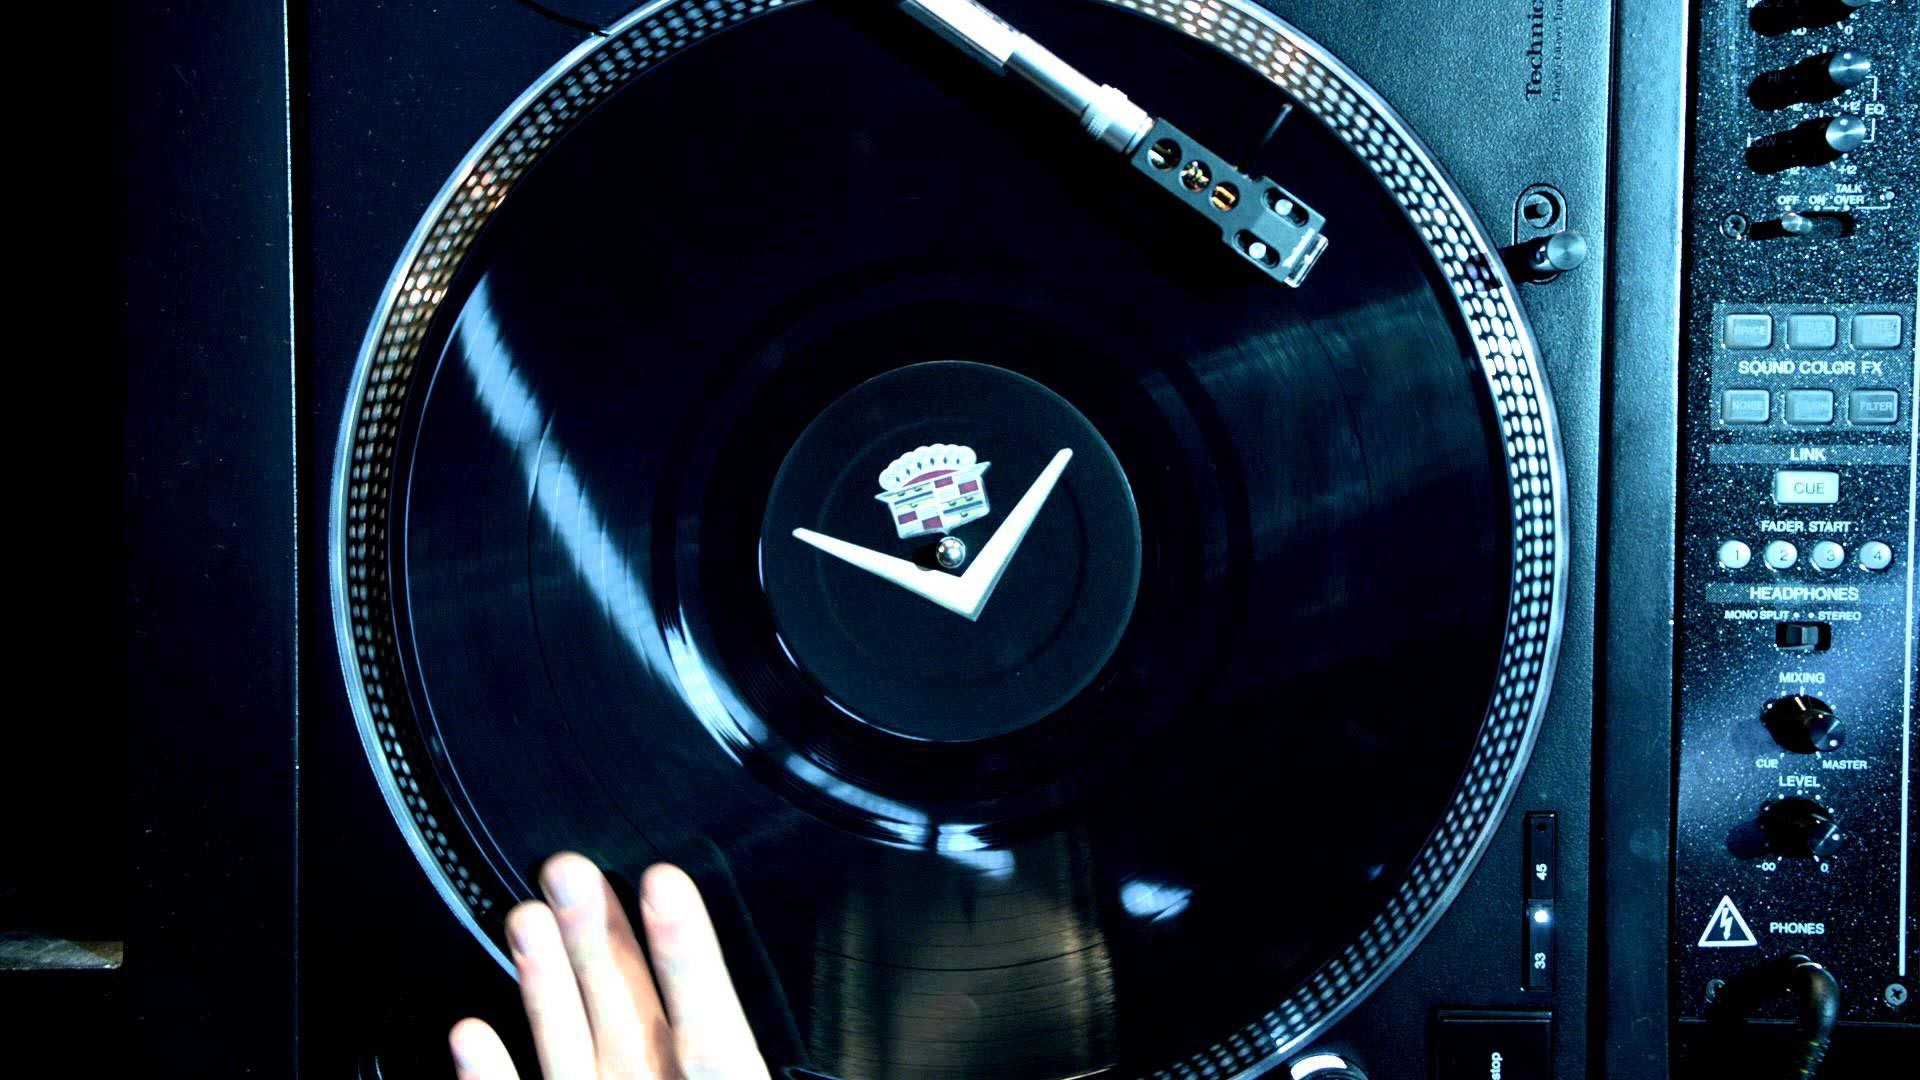 dj turntable background hd – photo #6